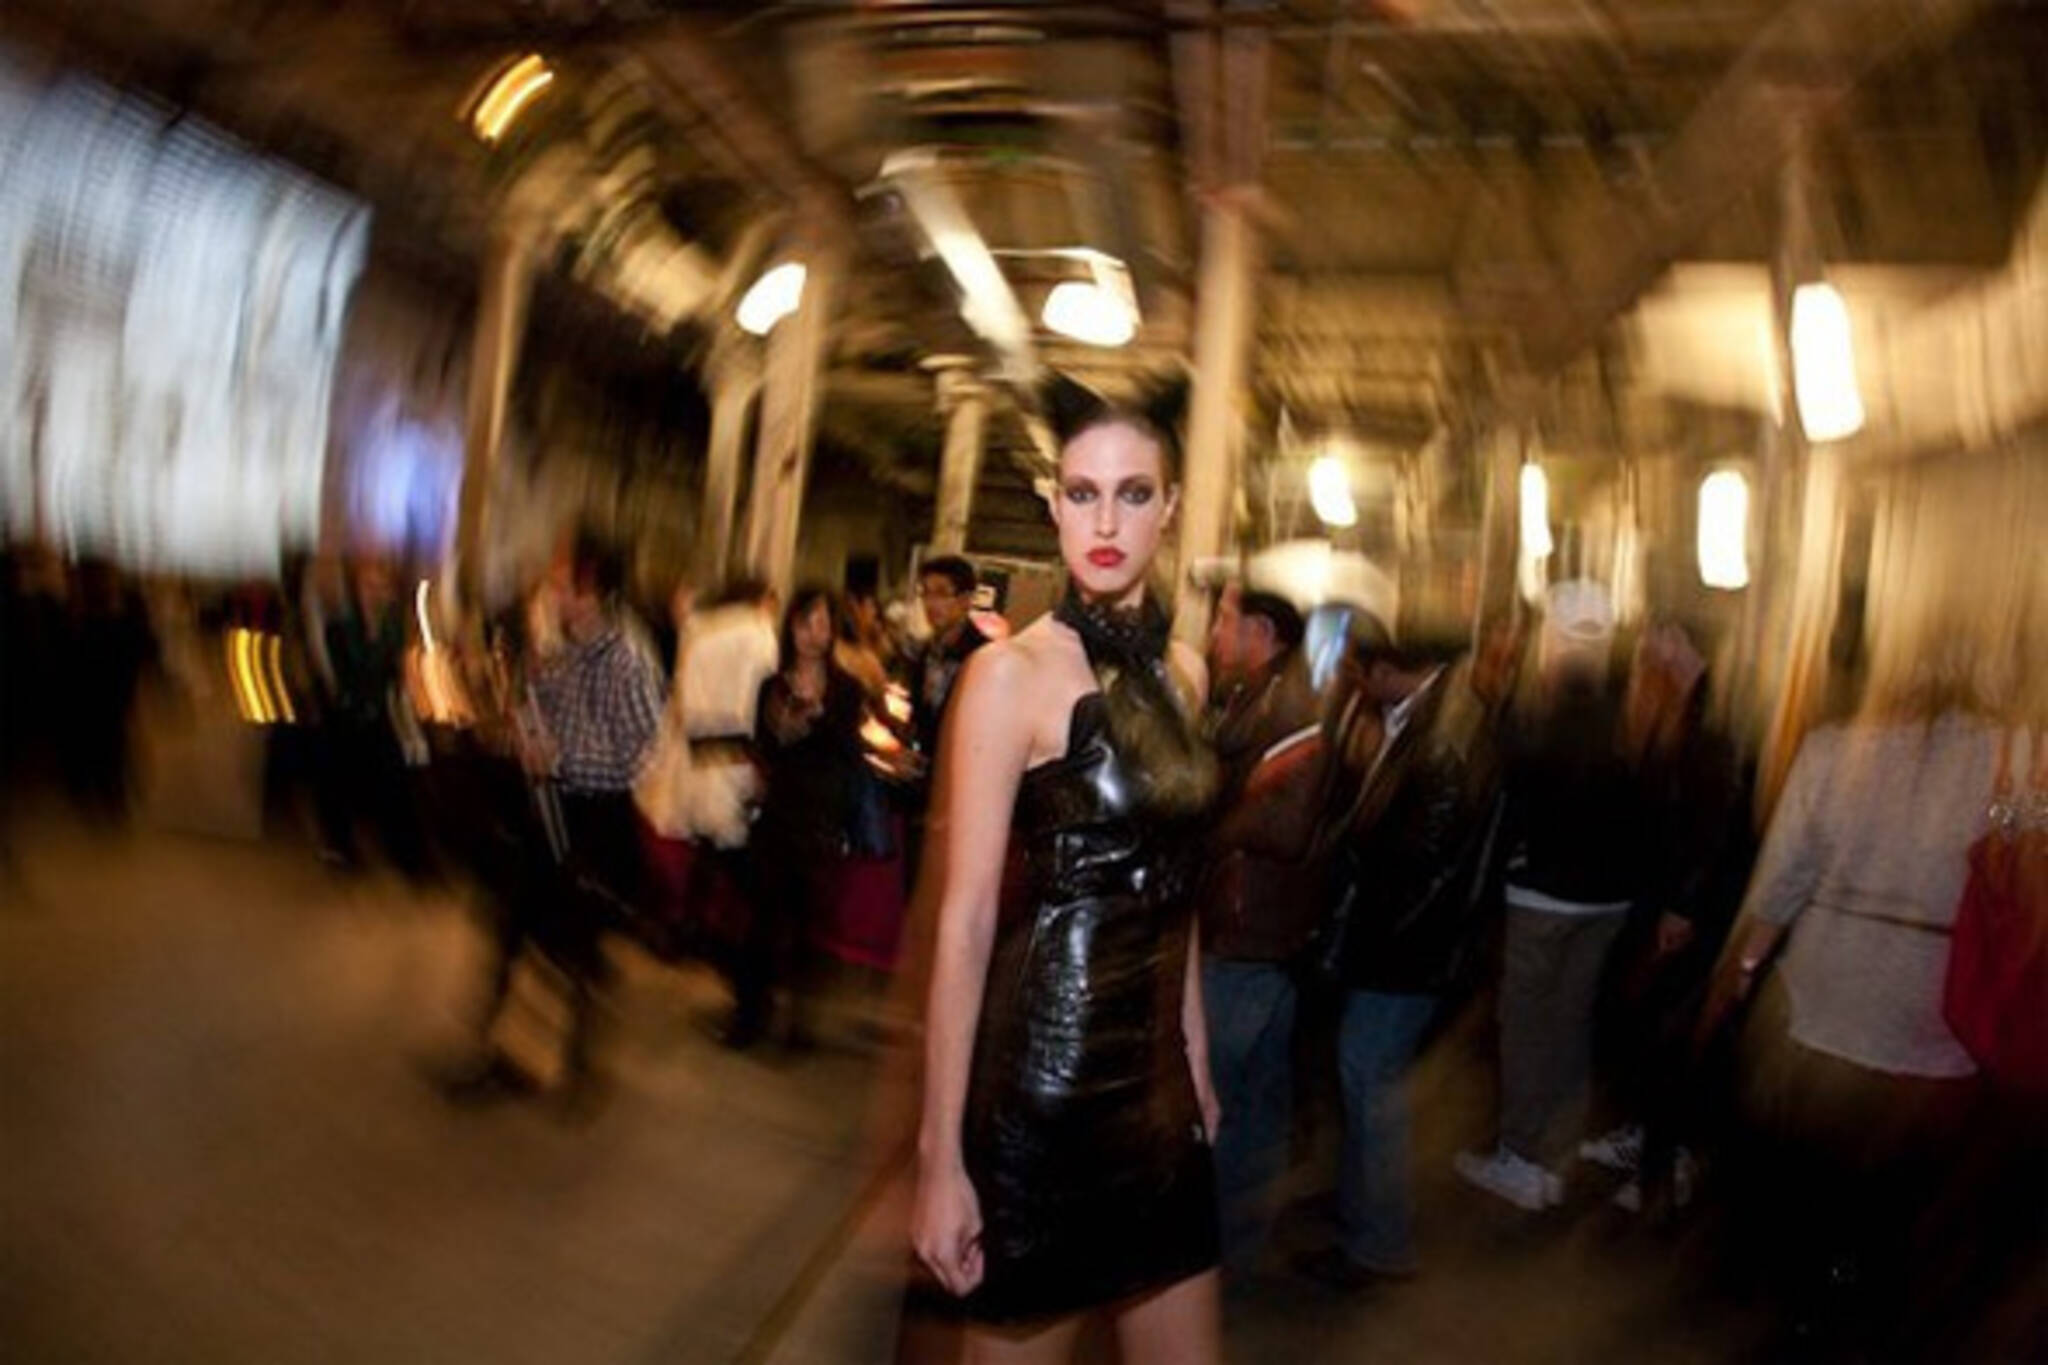 20091008-art-of-fashion-blur.jpg